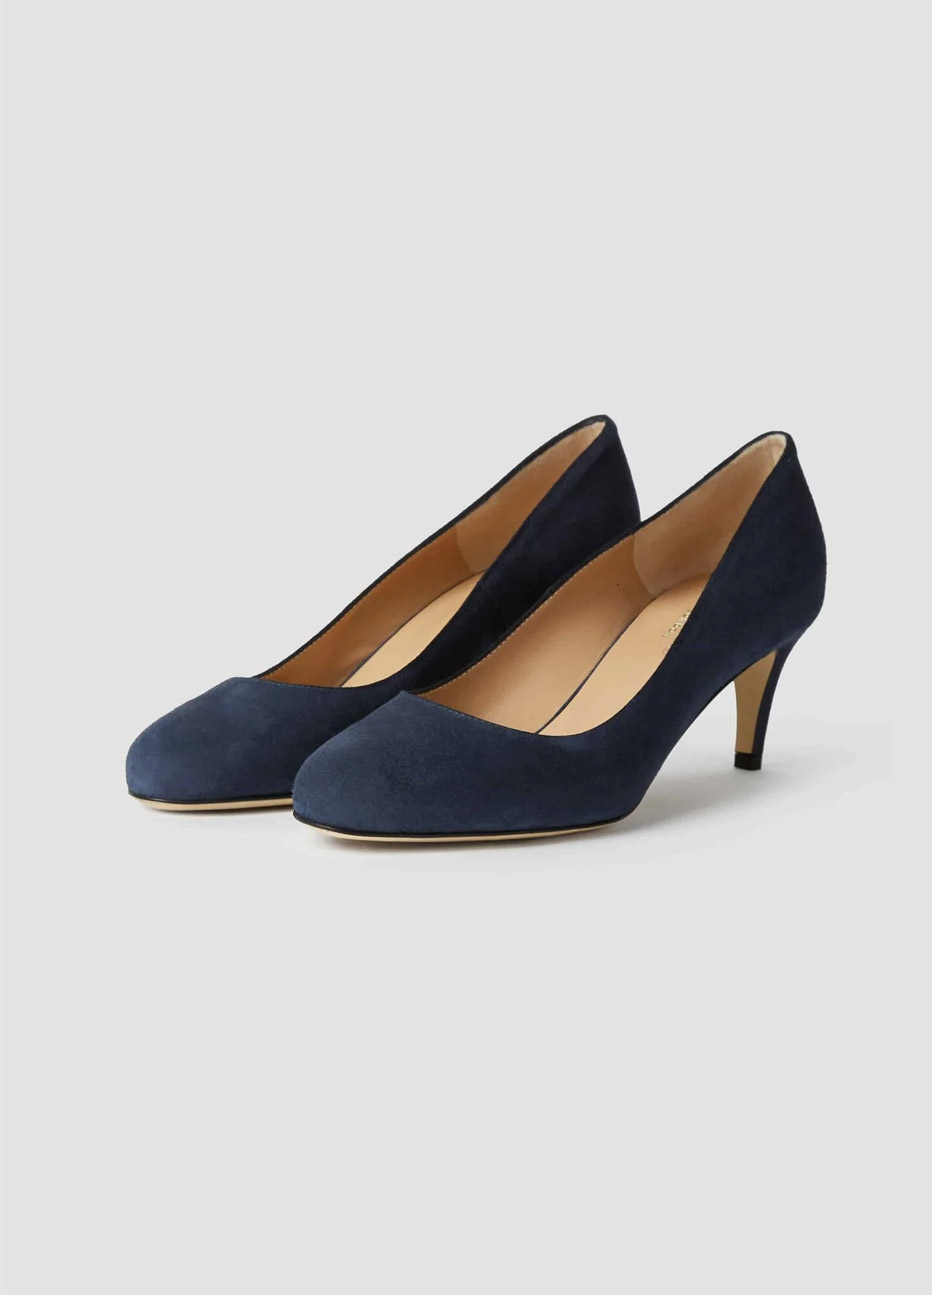 Navy low heeled court shoes from Hobbs.